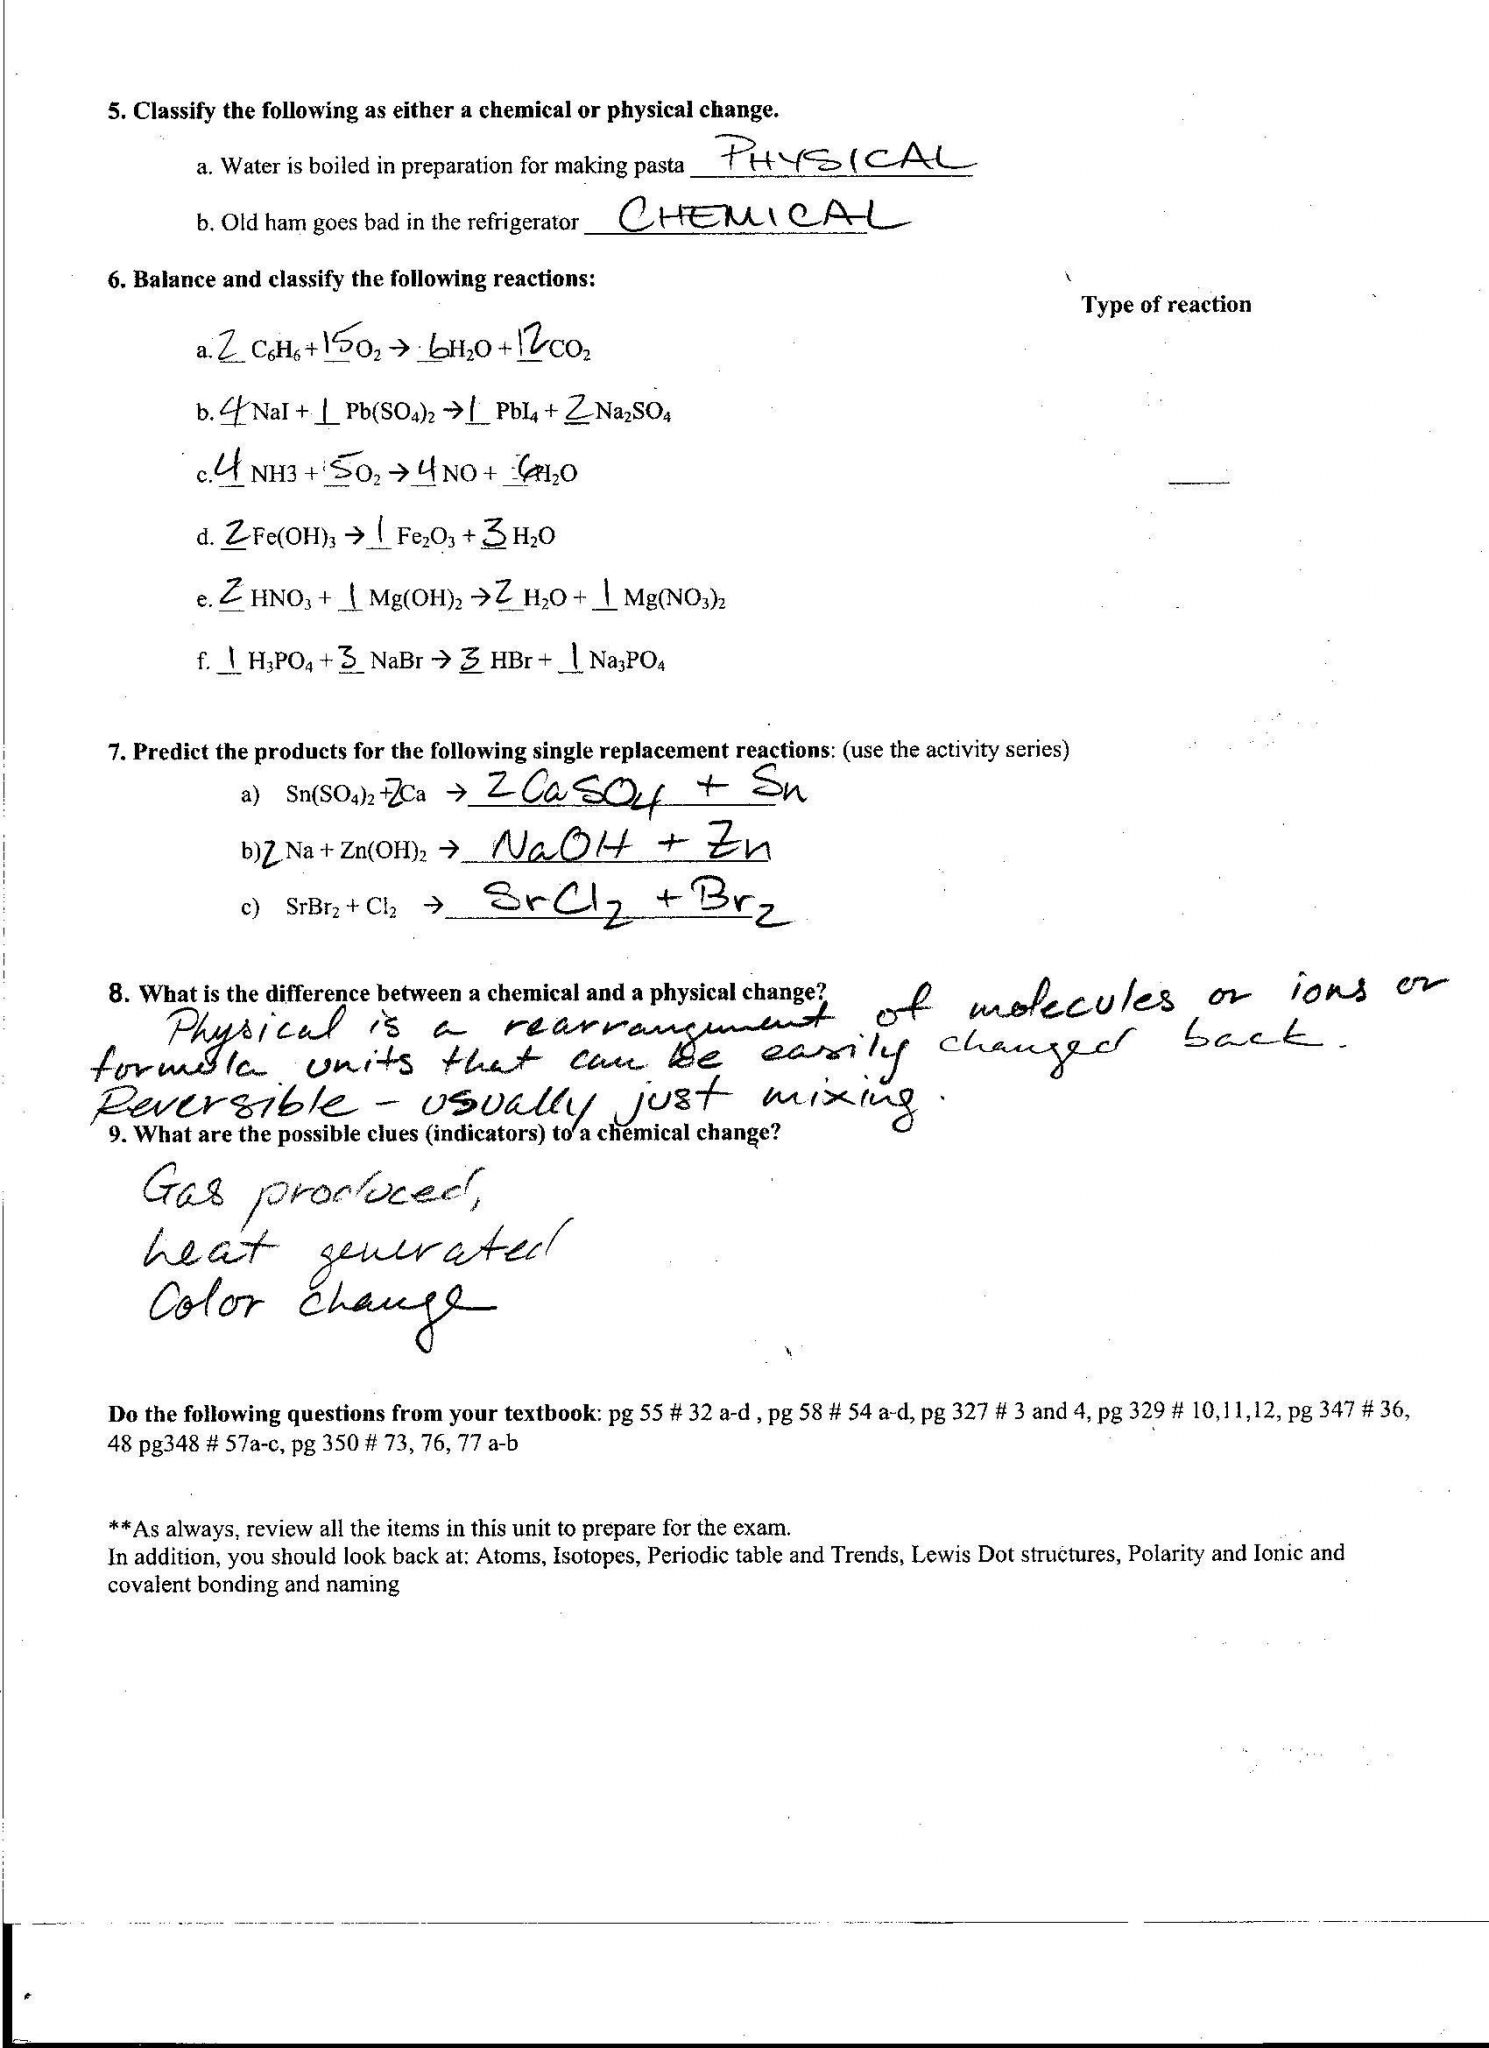 Chemistry Bonding Packet Worksheet 2 Reviewing Lewis Dot